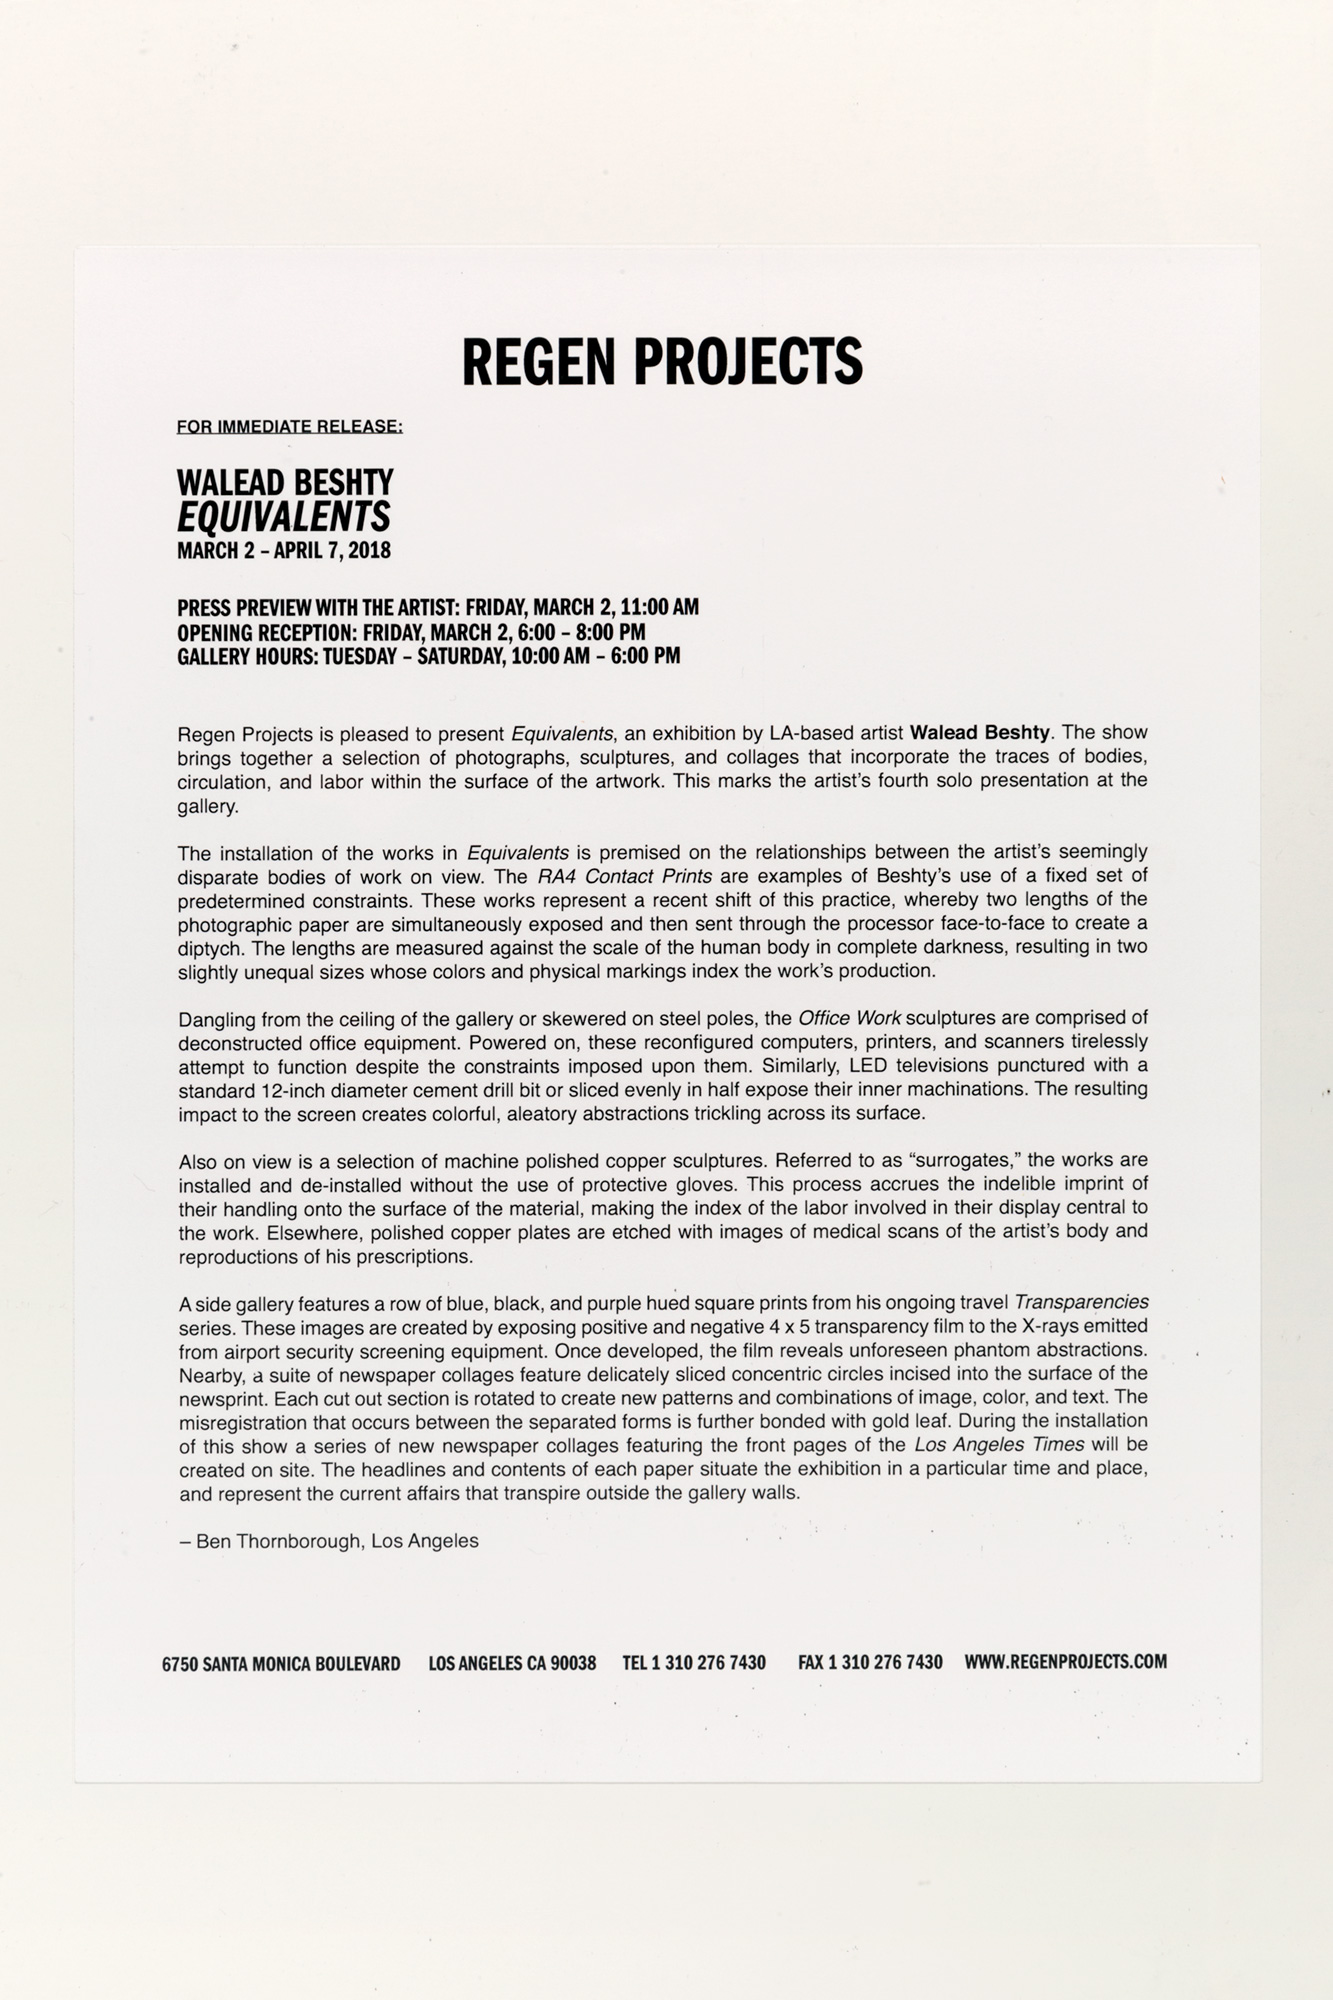 Equivalents press release   Regen Projects  Los Angeles  California  2018